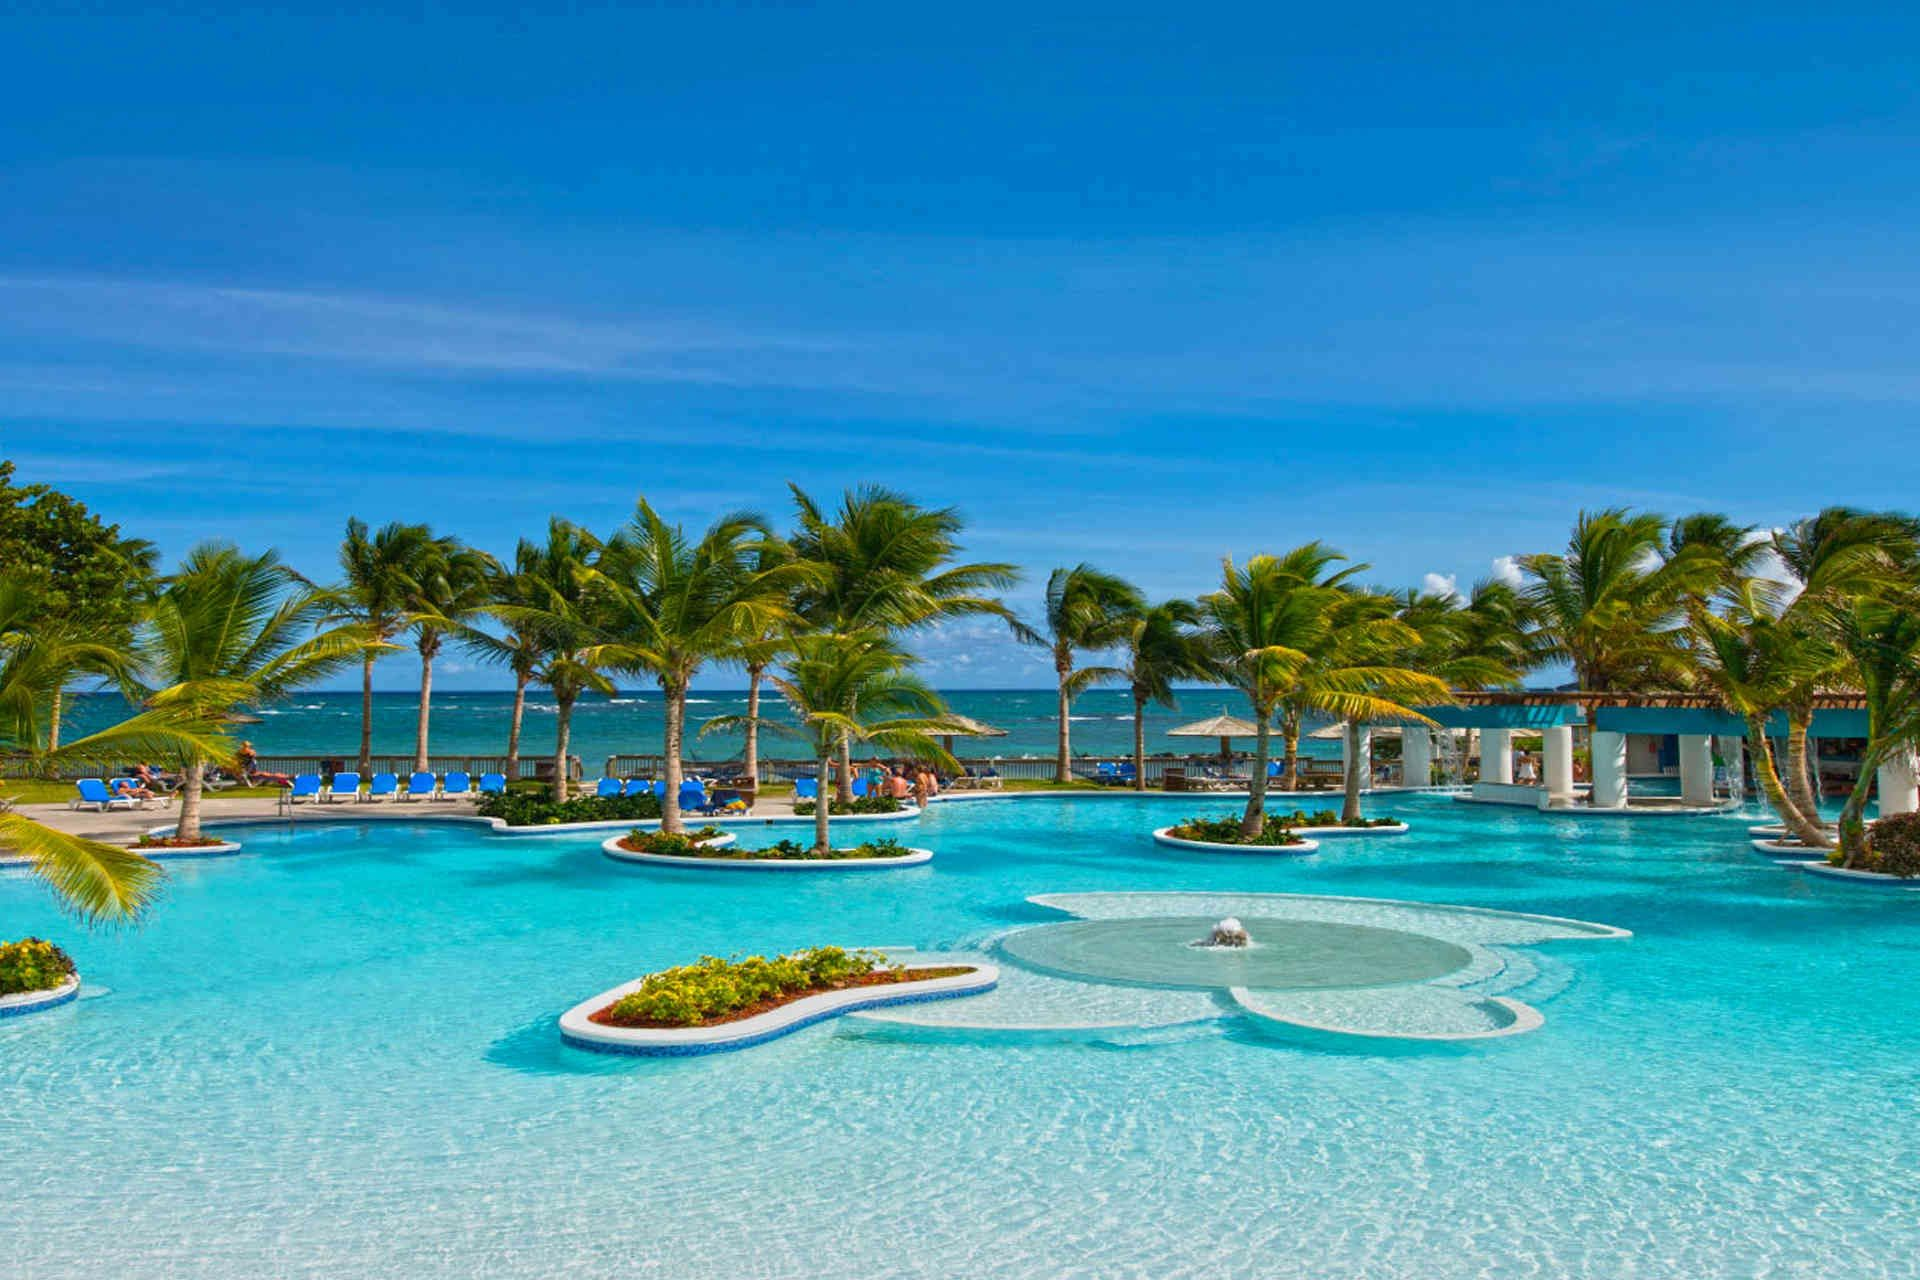 Beachfront Villa Rental St Maarten Spend Your St Maarten Vacation In Beachfront Vacation Homes Carribean Vacation Family Resorts All Inclusive Family Resorts